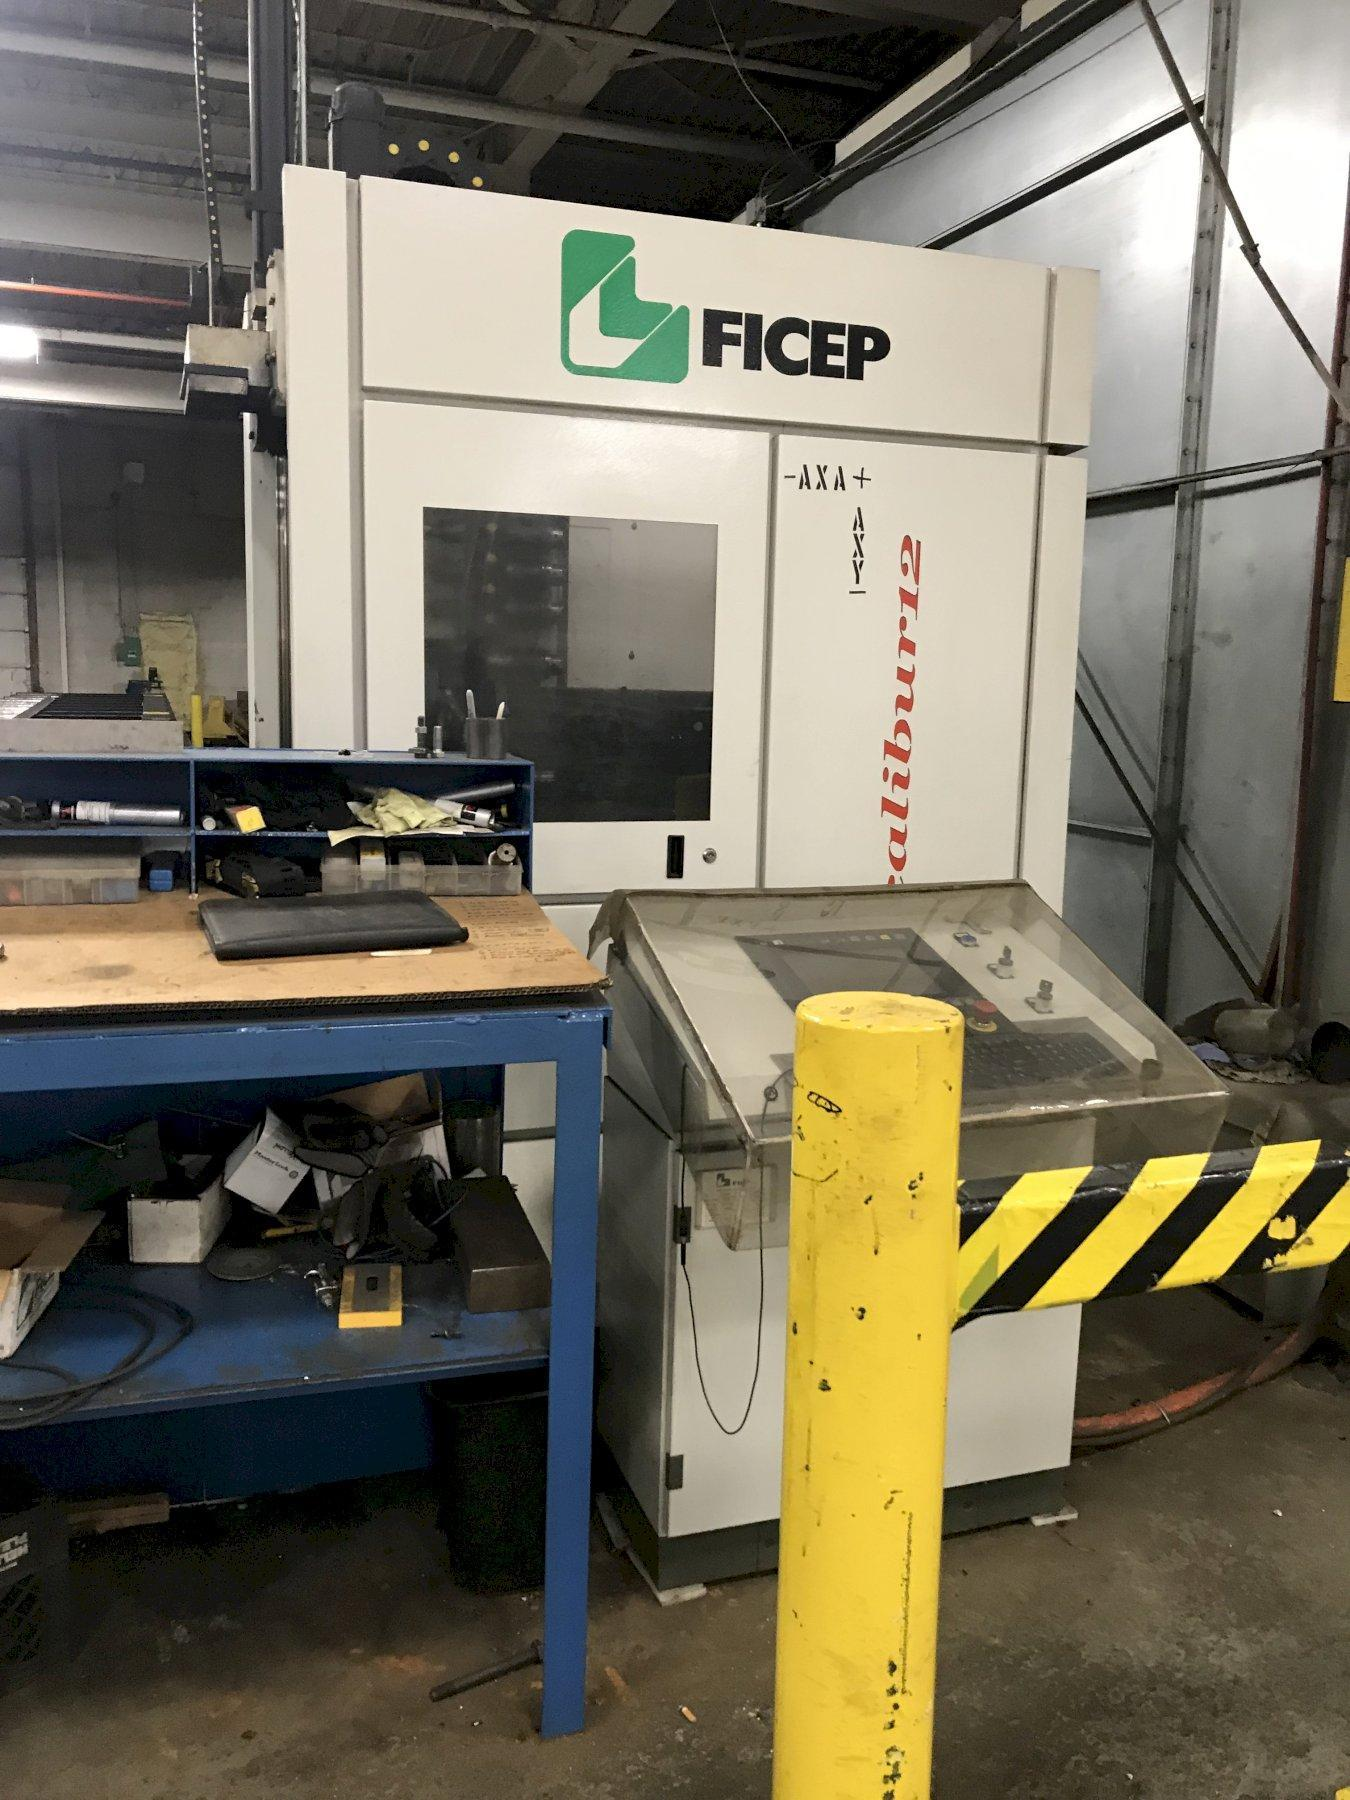 USED FICEP MODEL EXCALIBUR 12 CNC BEAM DRILL LINE WITH 60' OF TABLE, STOCK# 10651, YEAR 2012